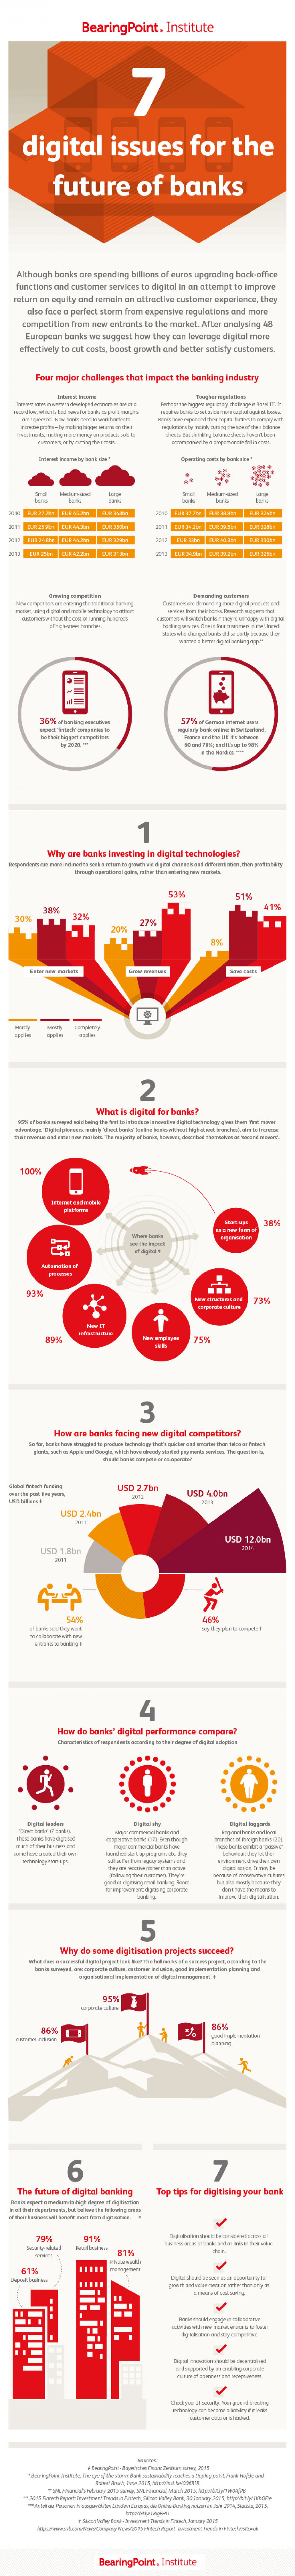 7 digital issues for the future of banks Infographic